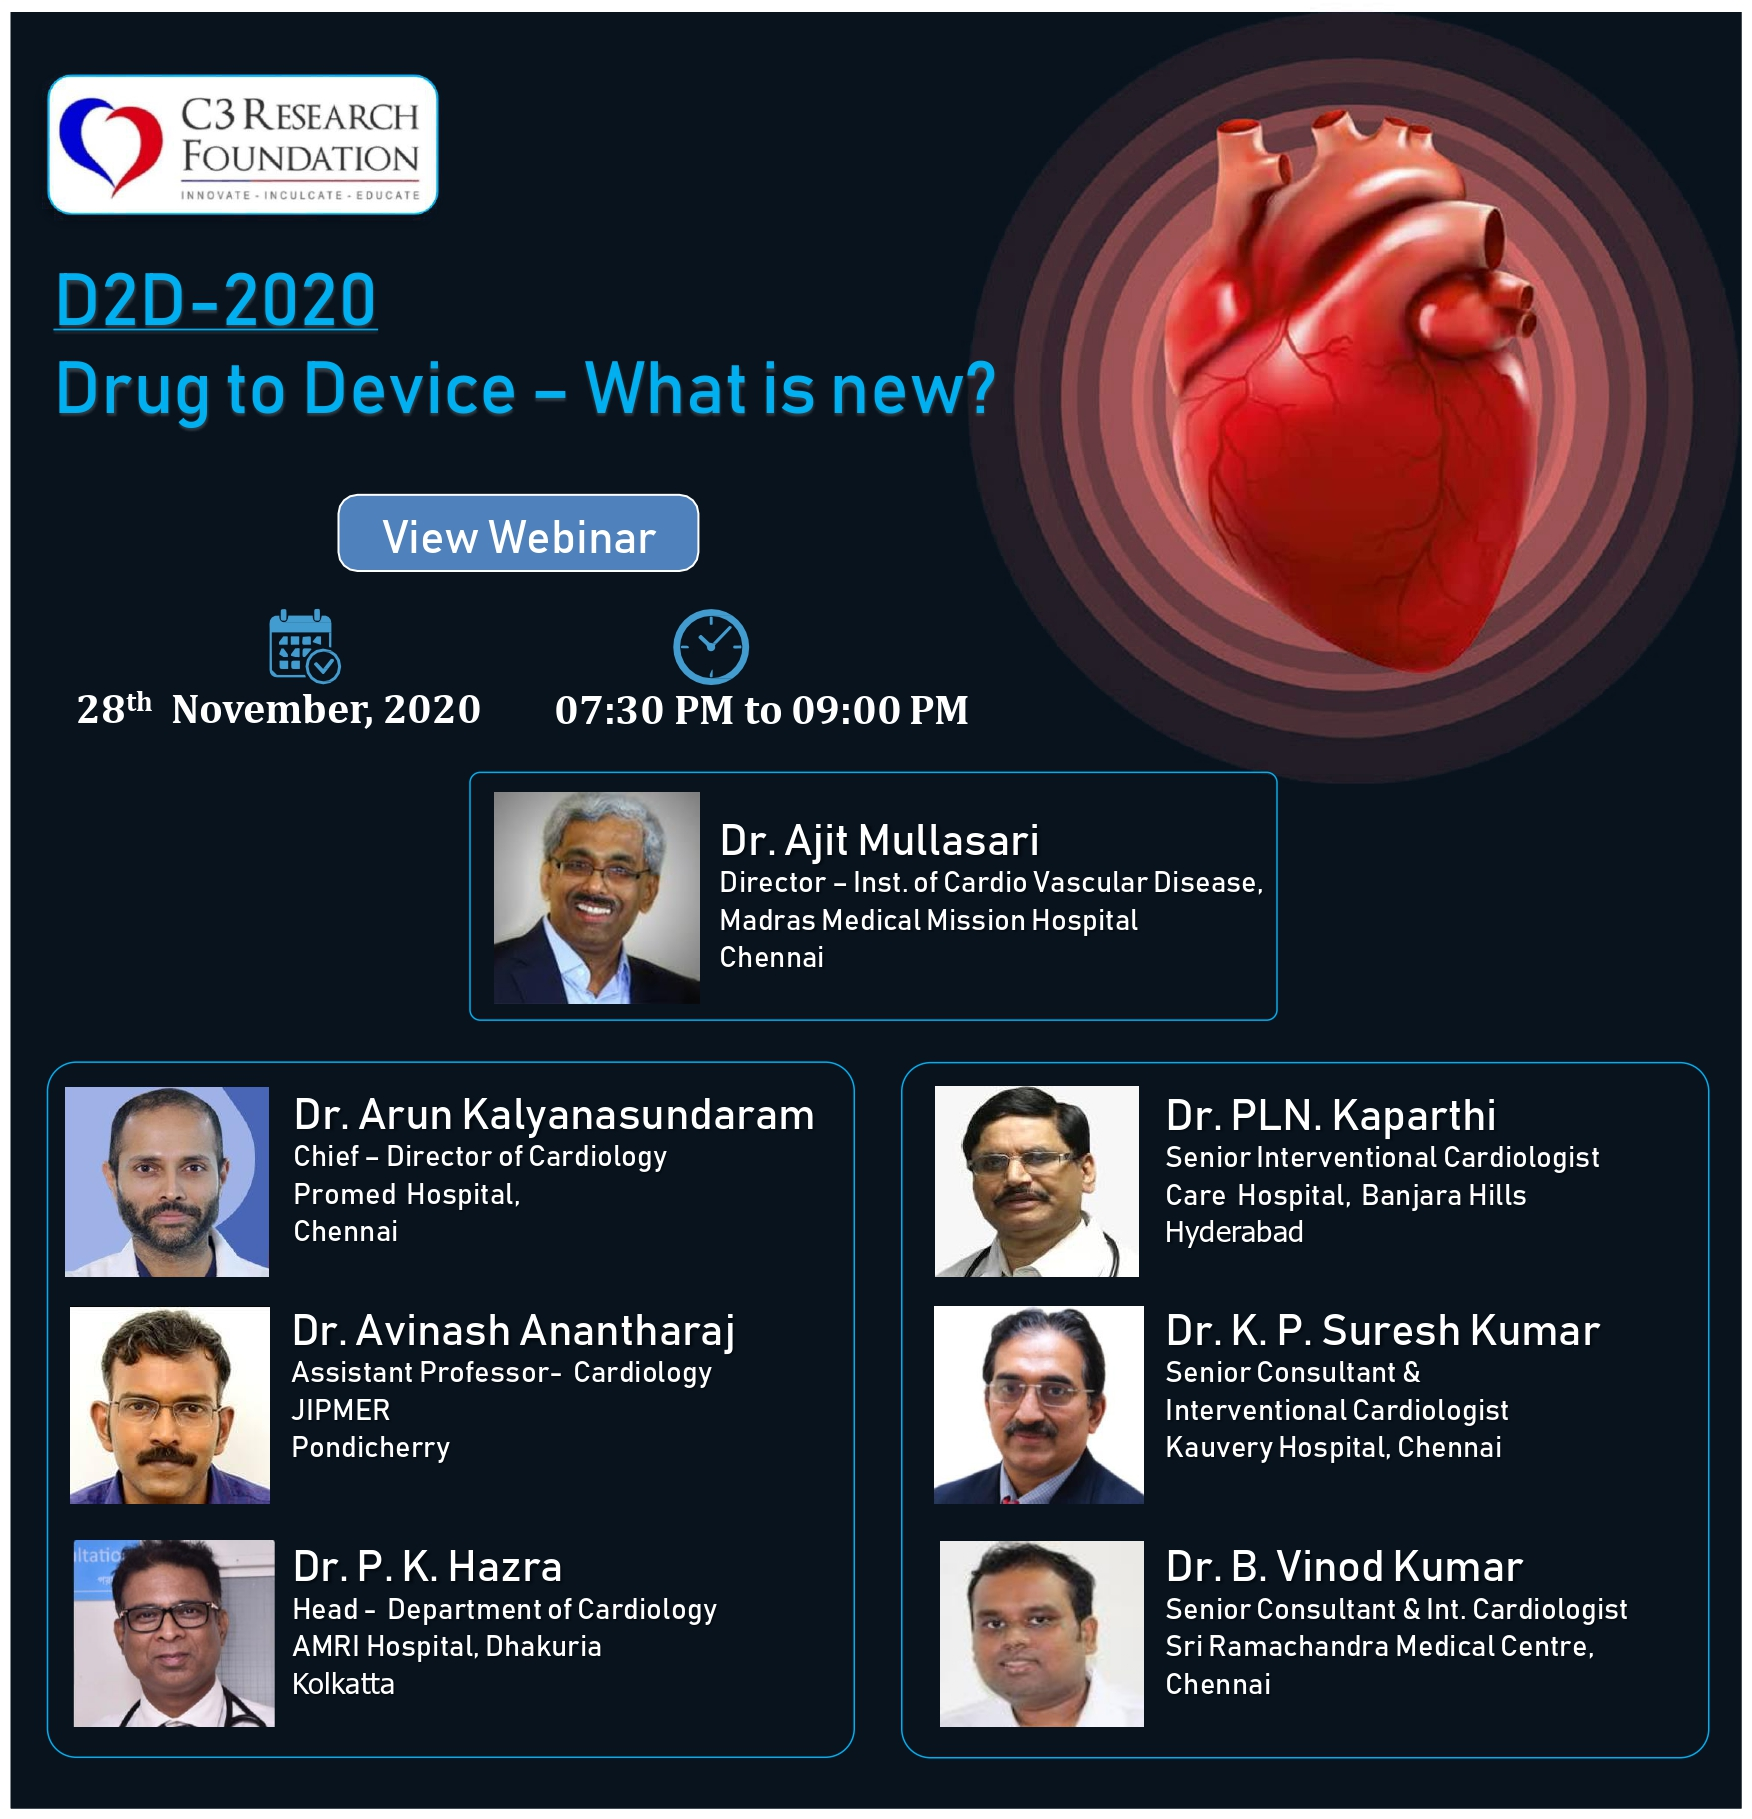 D2D 2020 - Drug to Device - What is New?